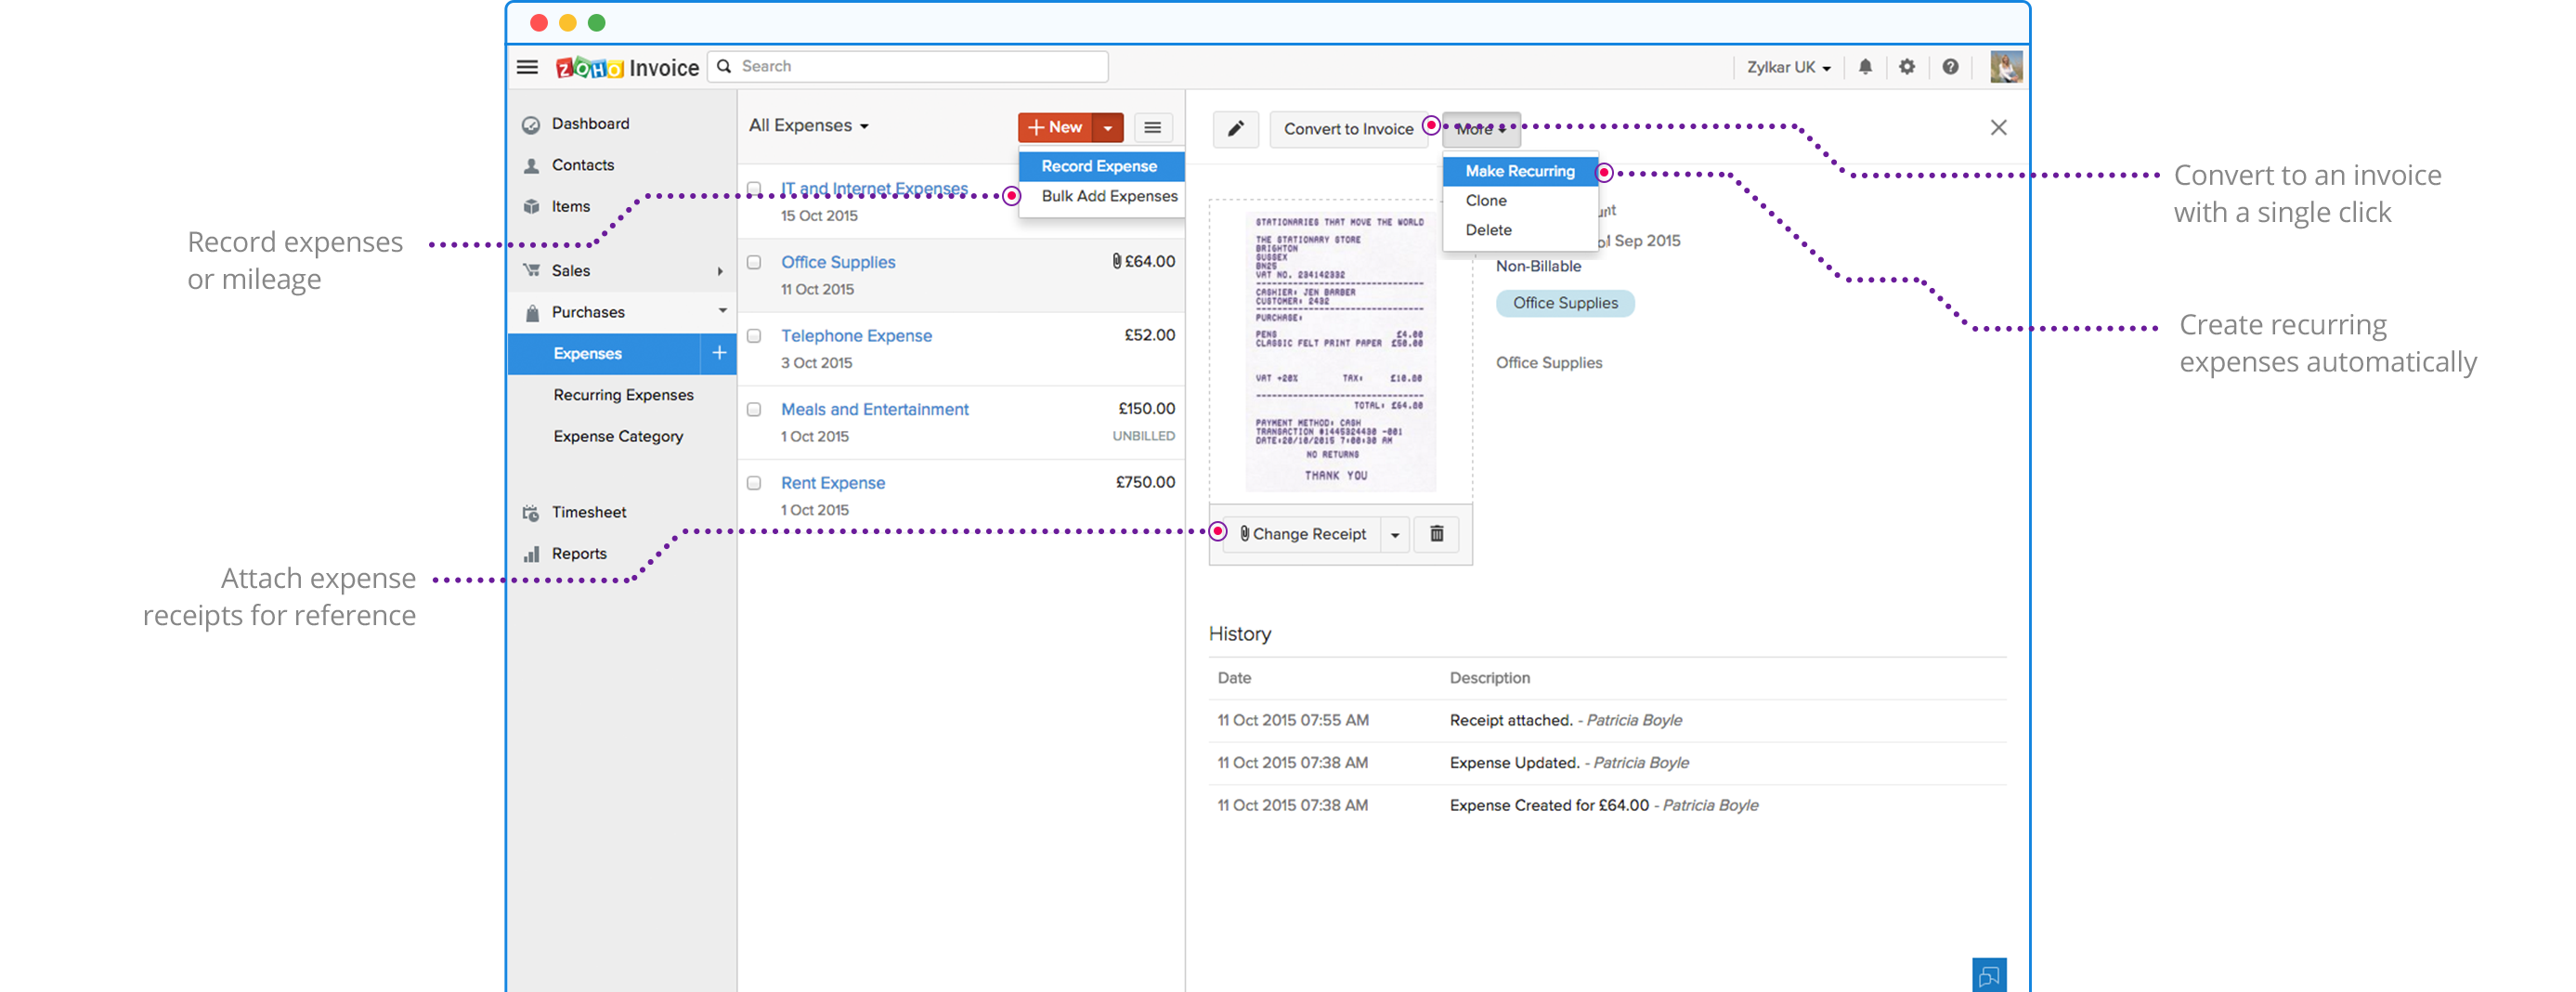 Record and Track Expenses - Zoho Invoice